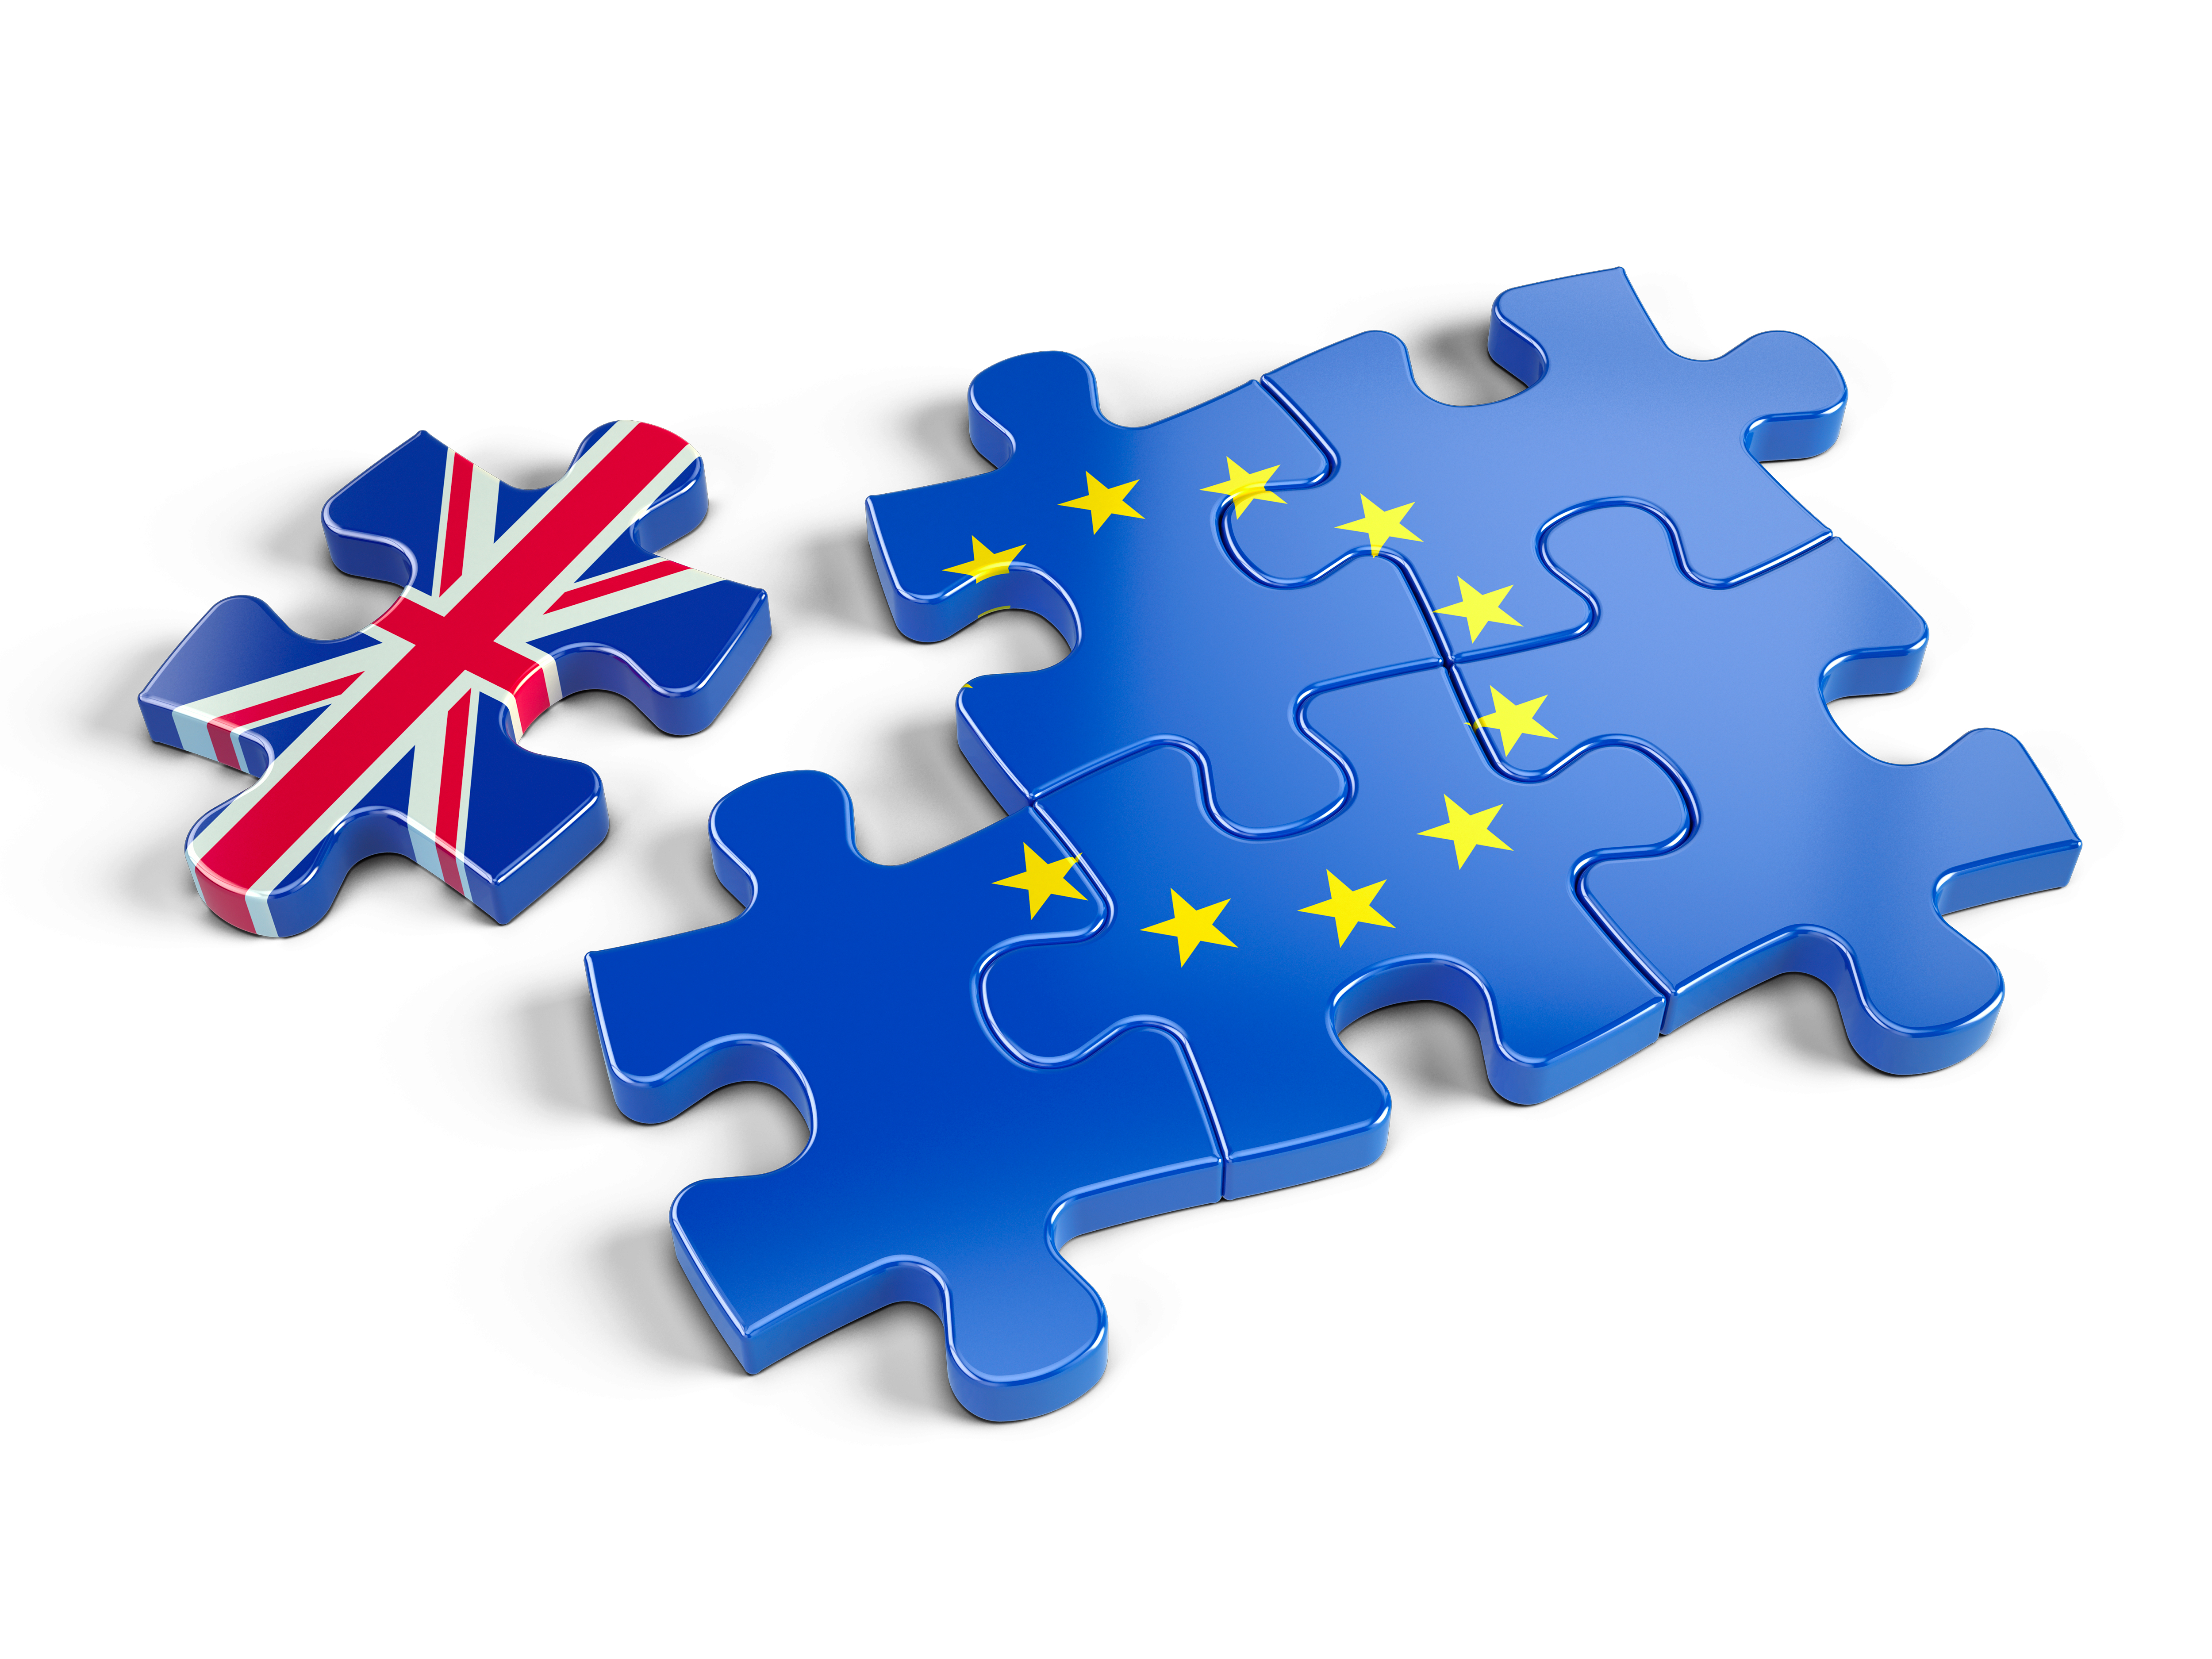 Puzzle representing Europe, left by a piece representing the UK